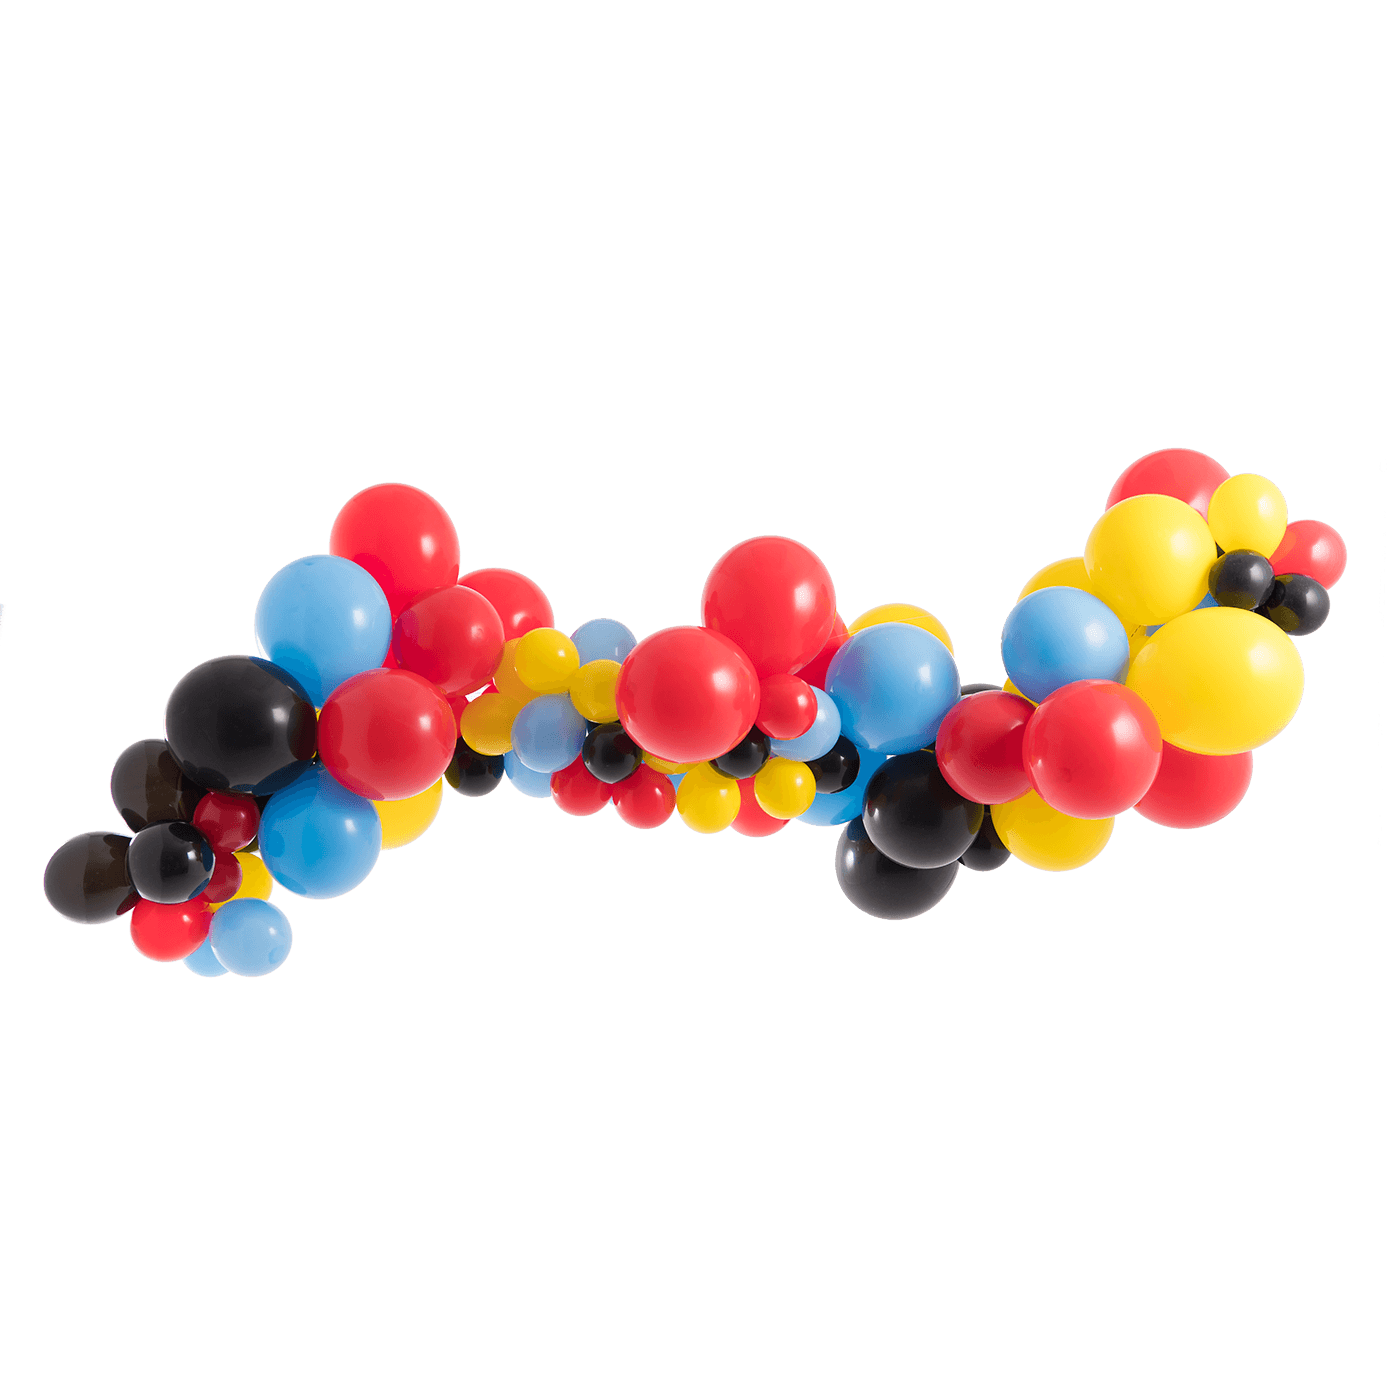 Mickey mouse balloons png. Balloon garland kit tether